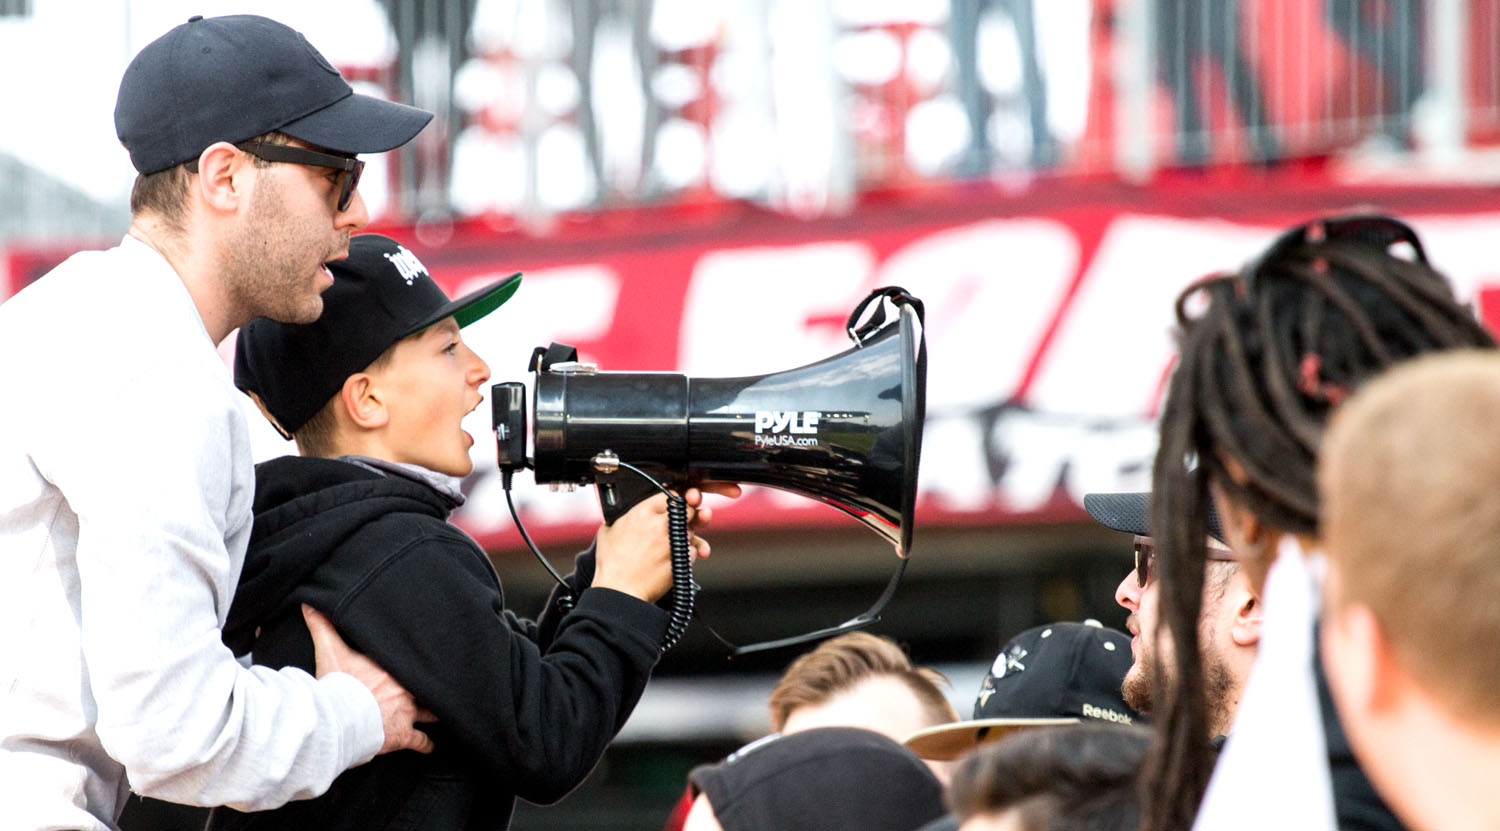 A young capo leads a section in the South End Supporters section in a chant.Image by Dennis Marciniak of denMAR Media.